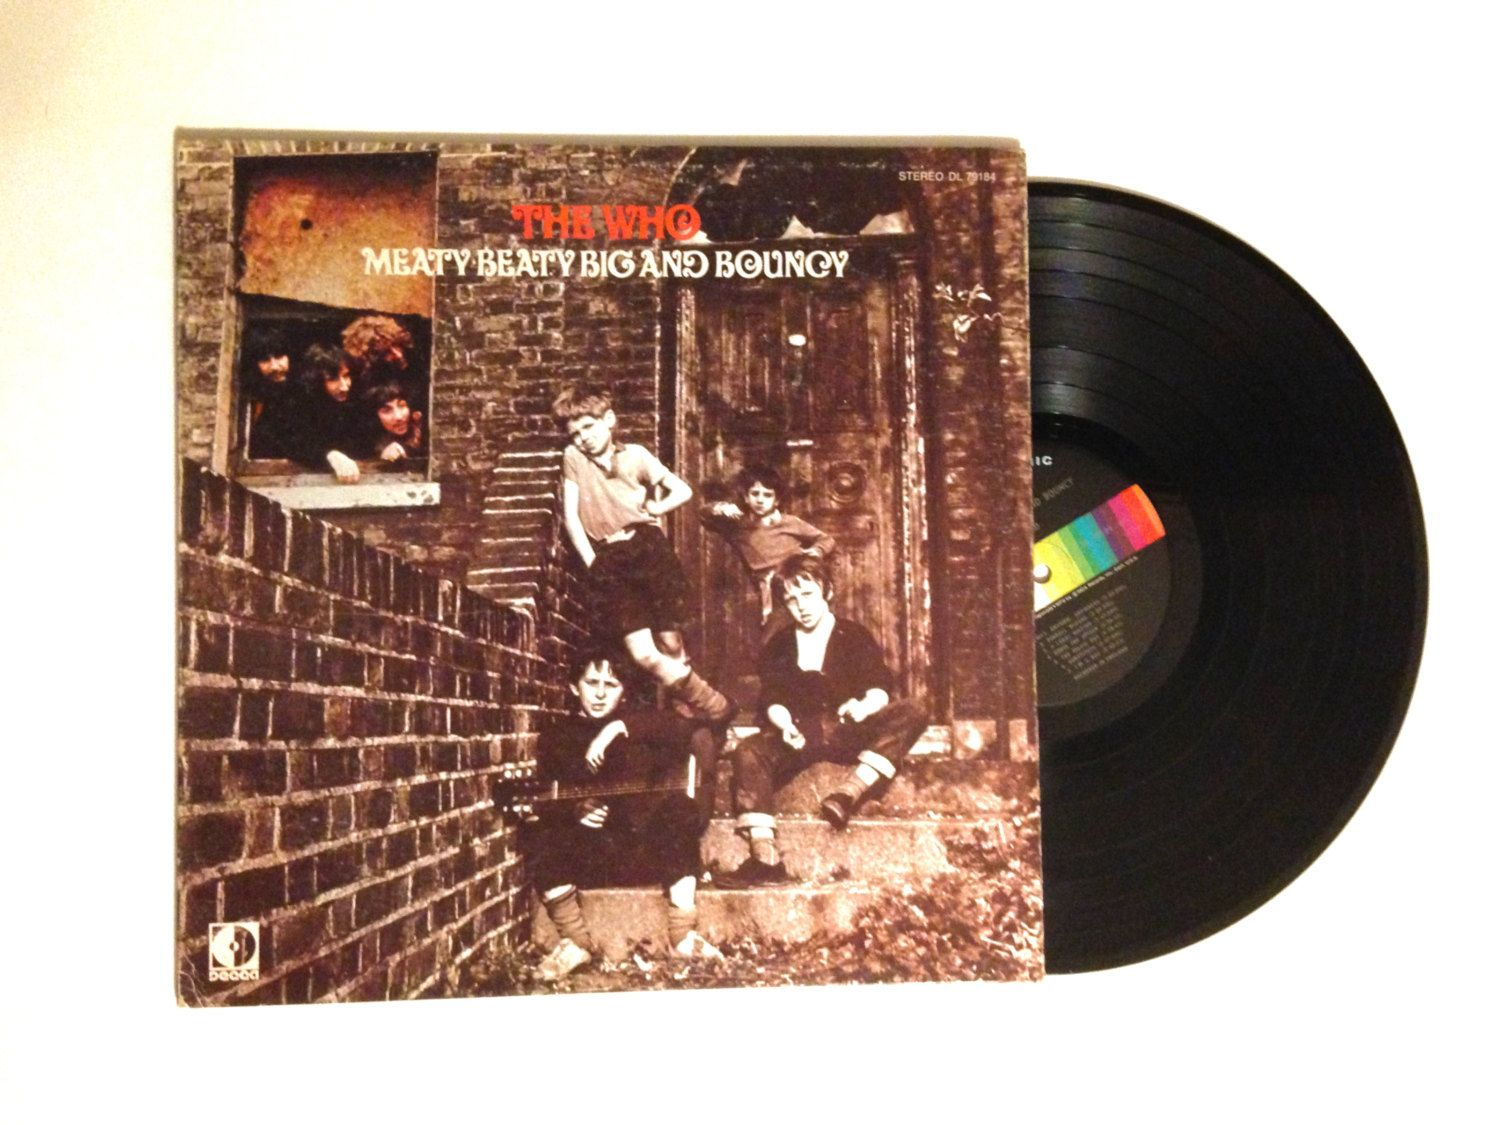 HOLIDAY SALE LP Album The Who Meaty Beaty Big And Bouncy Vinyl Record 1971 Magic Bus Pinball Wizard My Generation